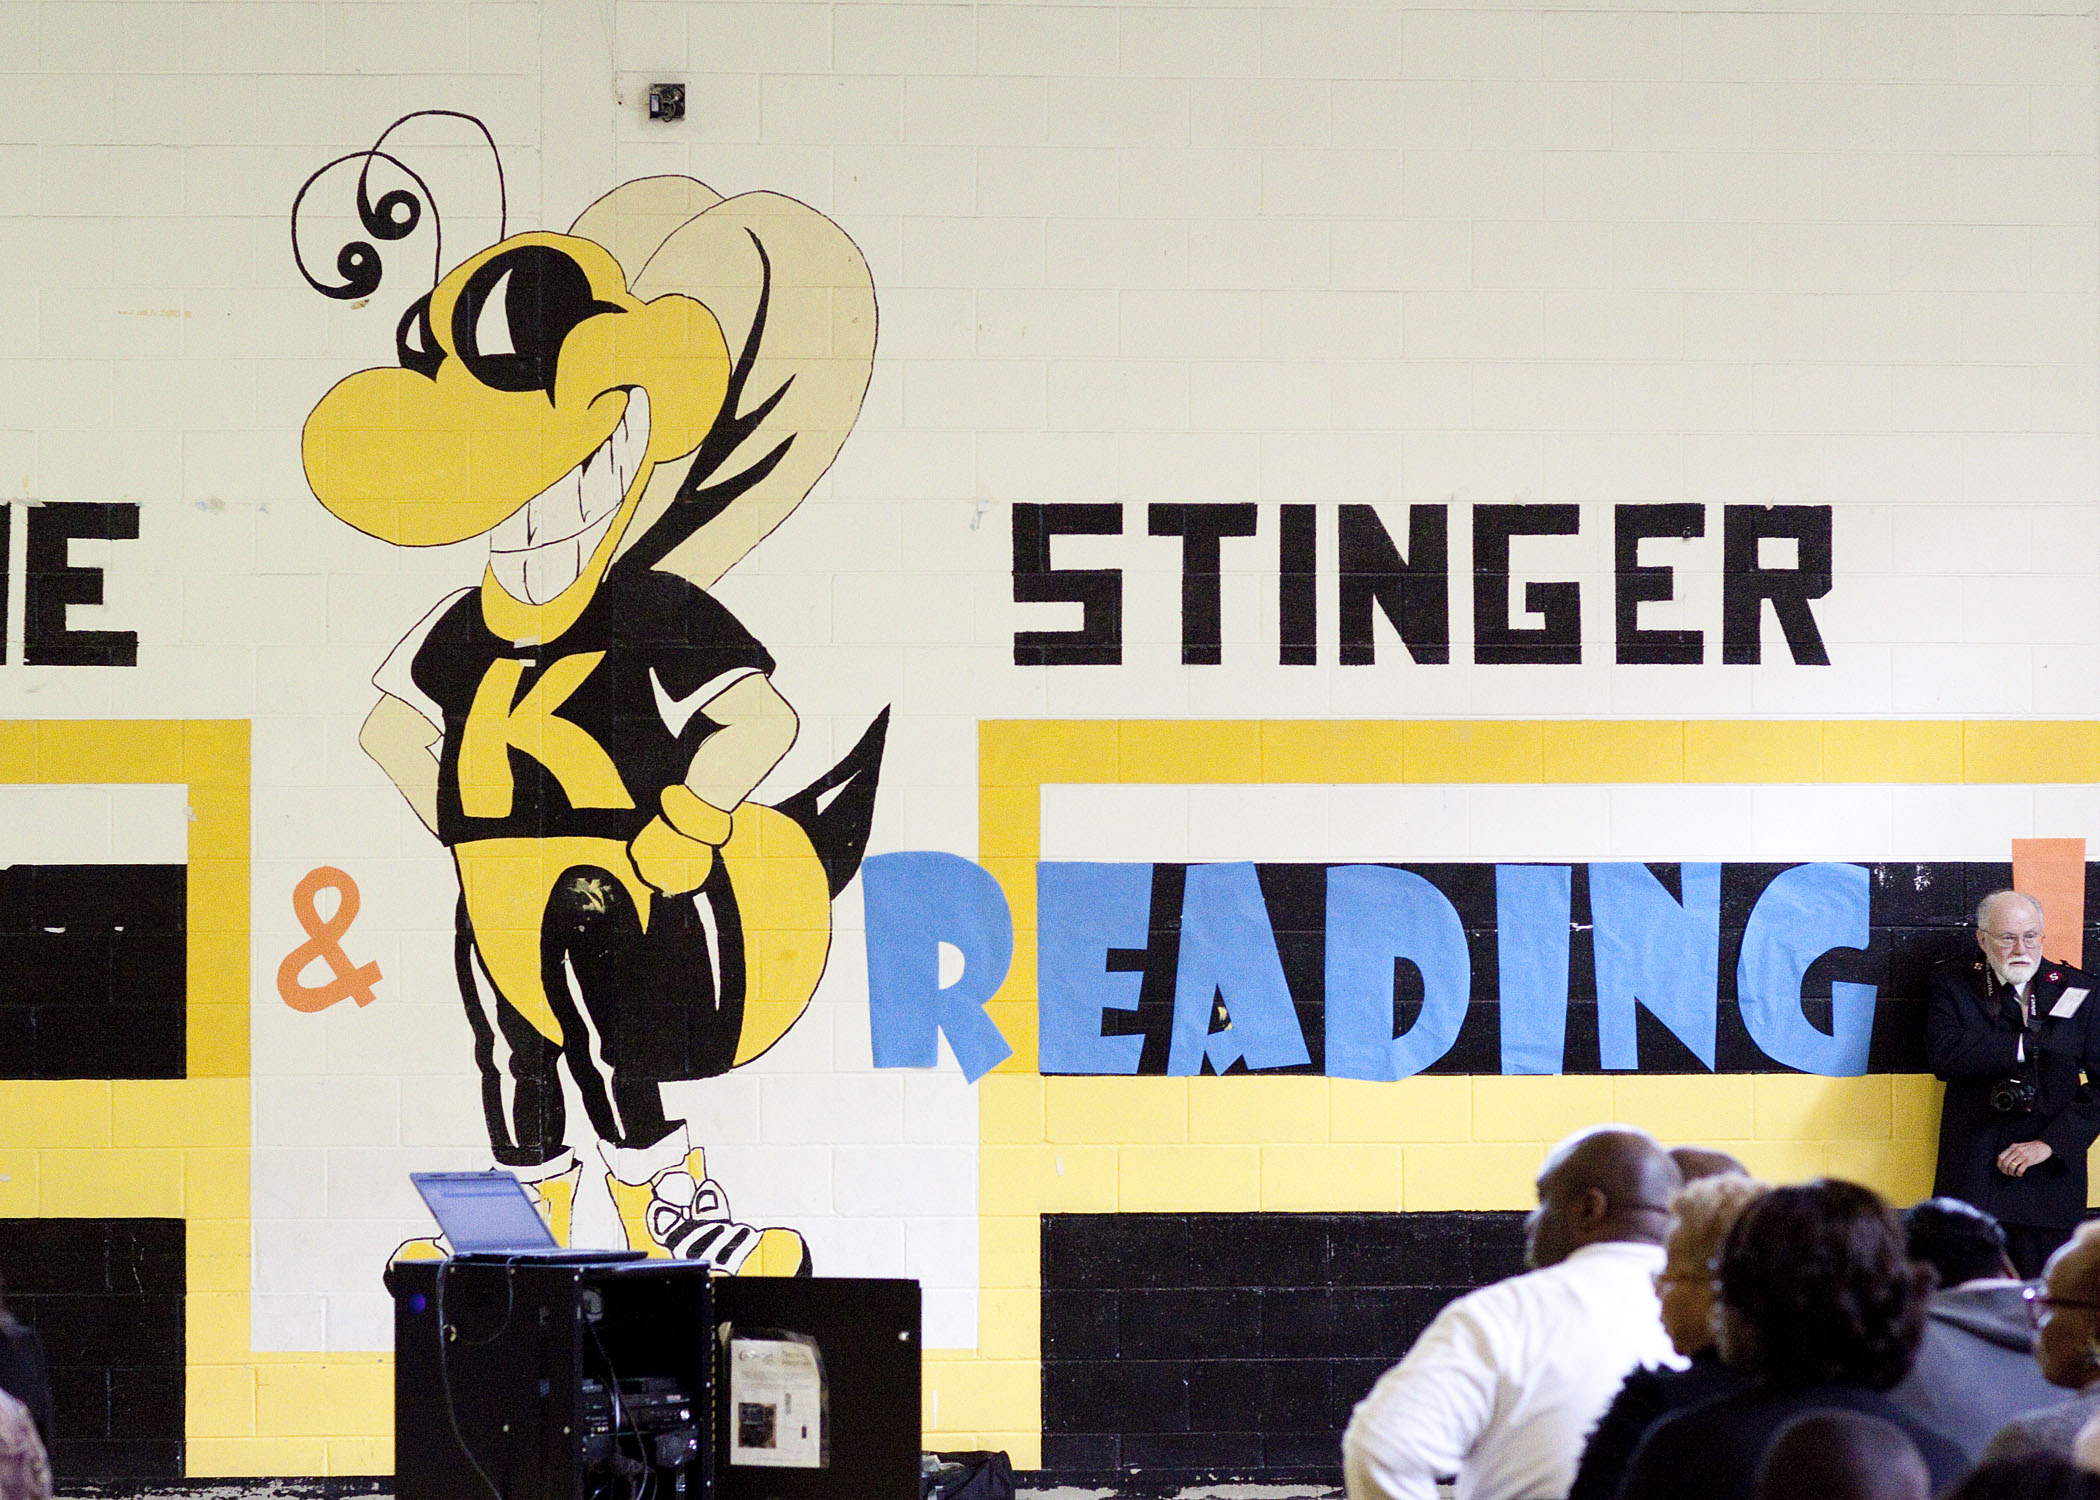 stinger reading